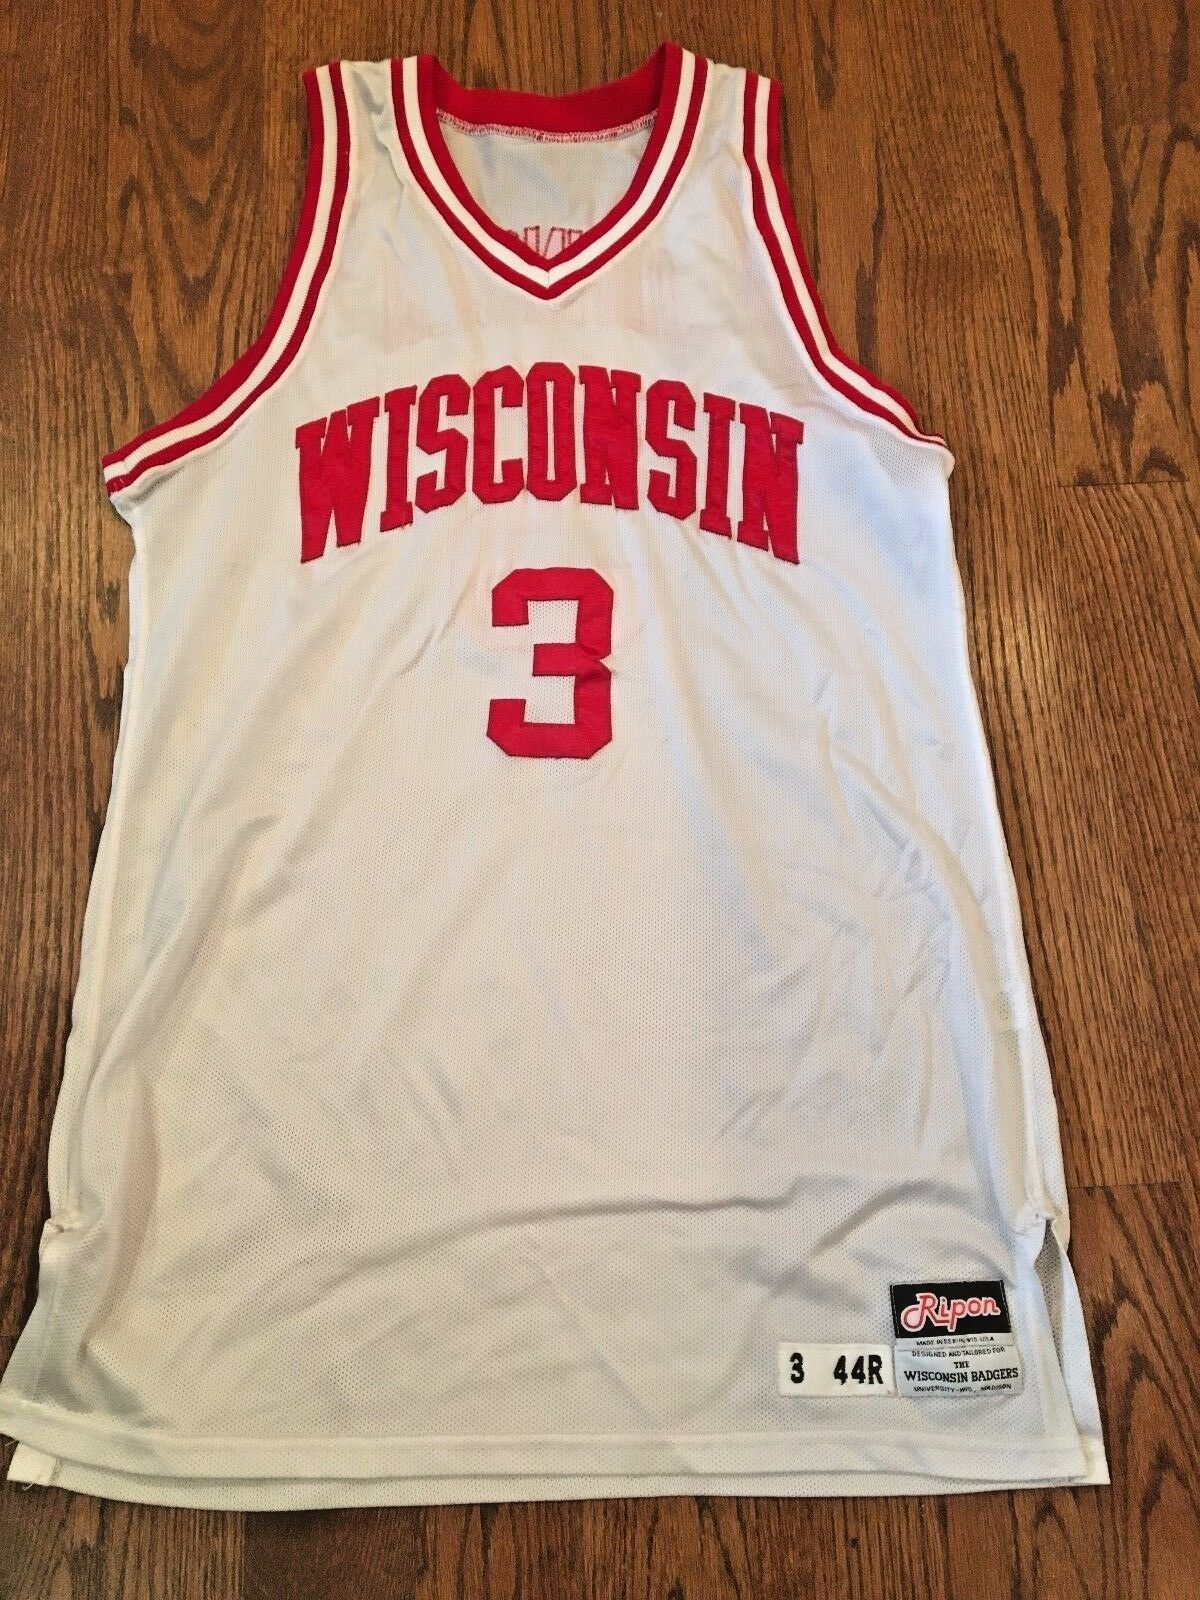 Vintage 1993 Wisconsin Match D'Occasion Maillot de Basket-Ball Worn By  3